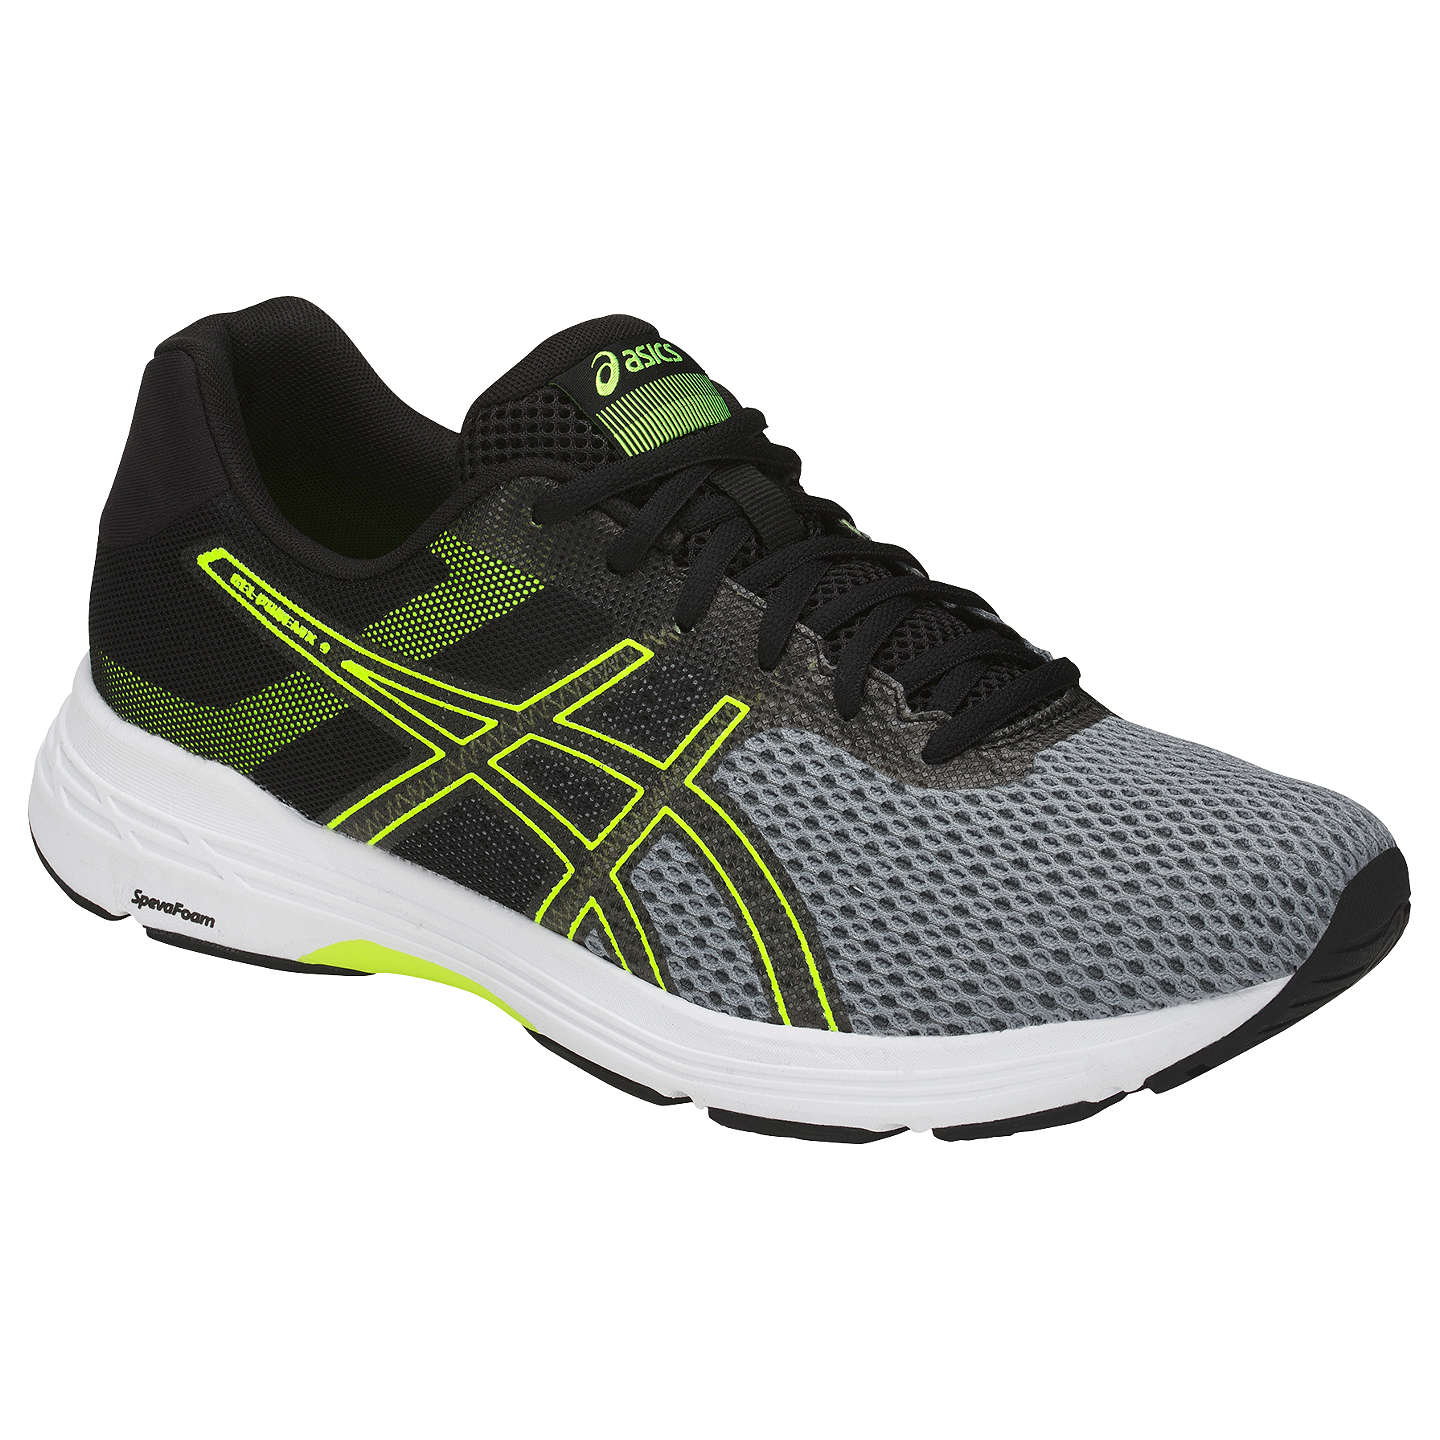 BuyAsics GEL-PHOENIX 9 Men's Running Shoes, Stone Grey/Black/Safety Yellow  ...